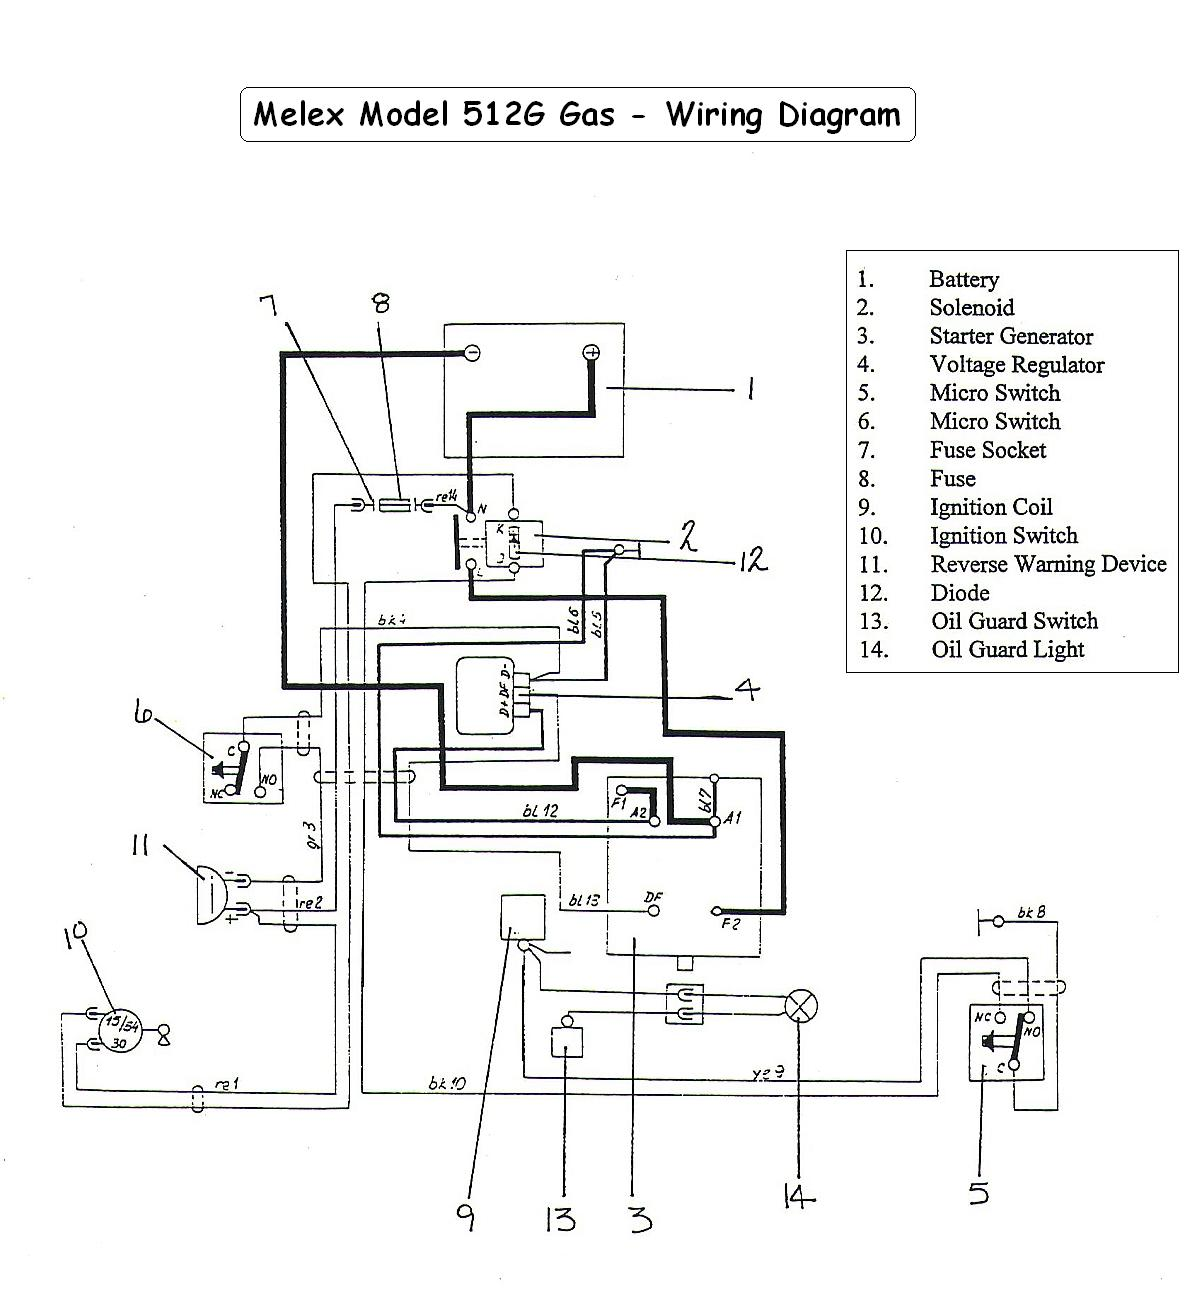 DIAGRAM] 625g Melex Gas Golf Cart Wiring Diagram FULL Version HD Quality Wiring  Diagram - PREGBOARDWIRING.CONCESSIONARIABELOGISENIGALLIA.ITconcessionariabelogisenigallia.it